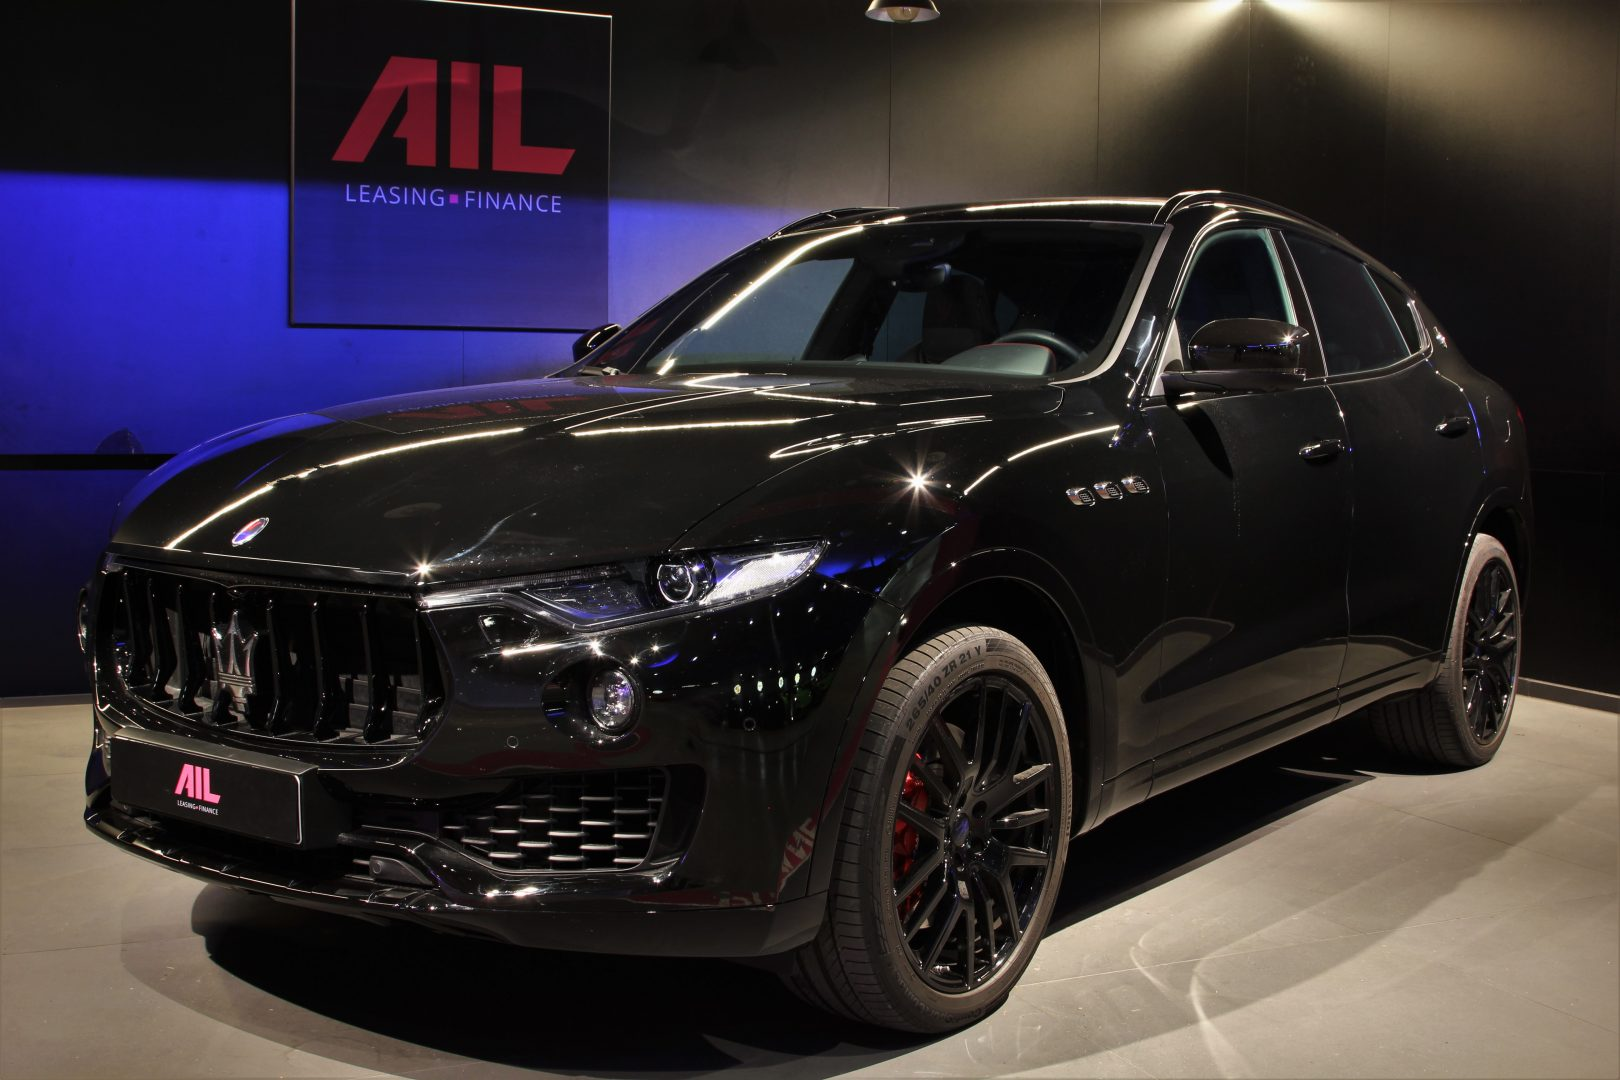 AIL Maserati Levante S Gransport Panorama Harman Kardon 11